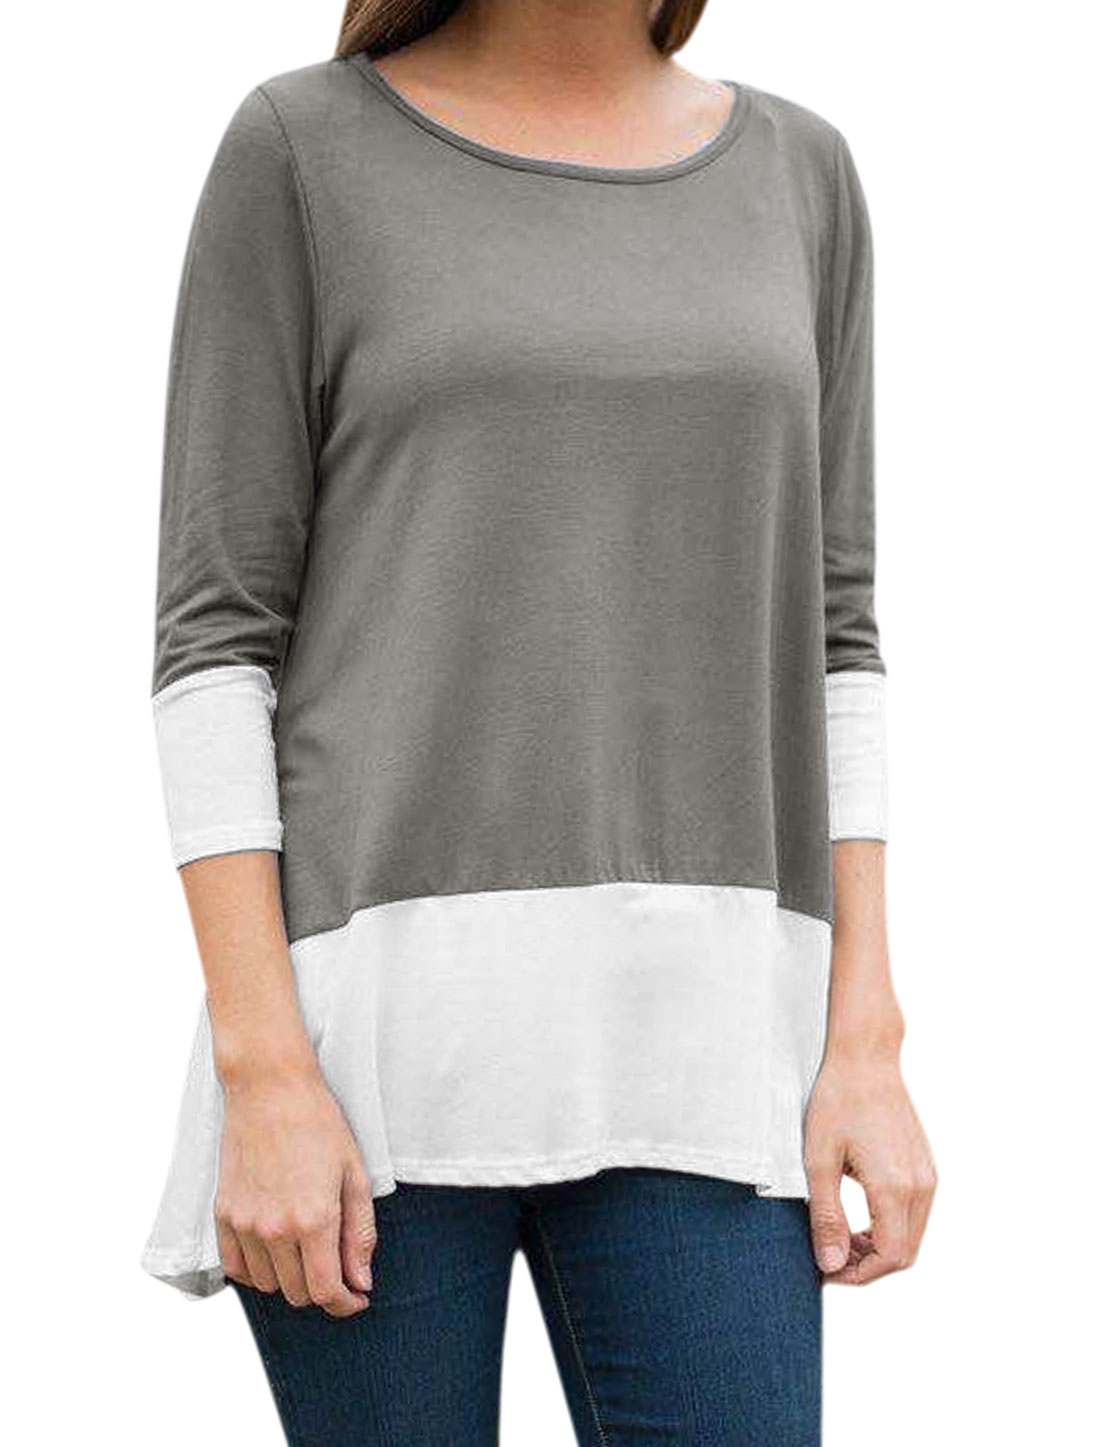 Women Round Neck Long Sleeves Color Block High Low Hem Tunic Top Gray M